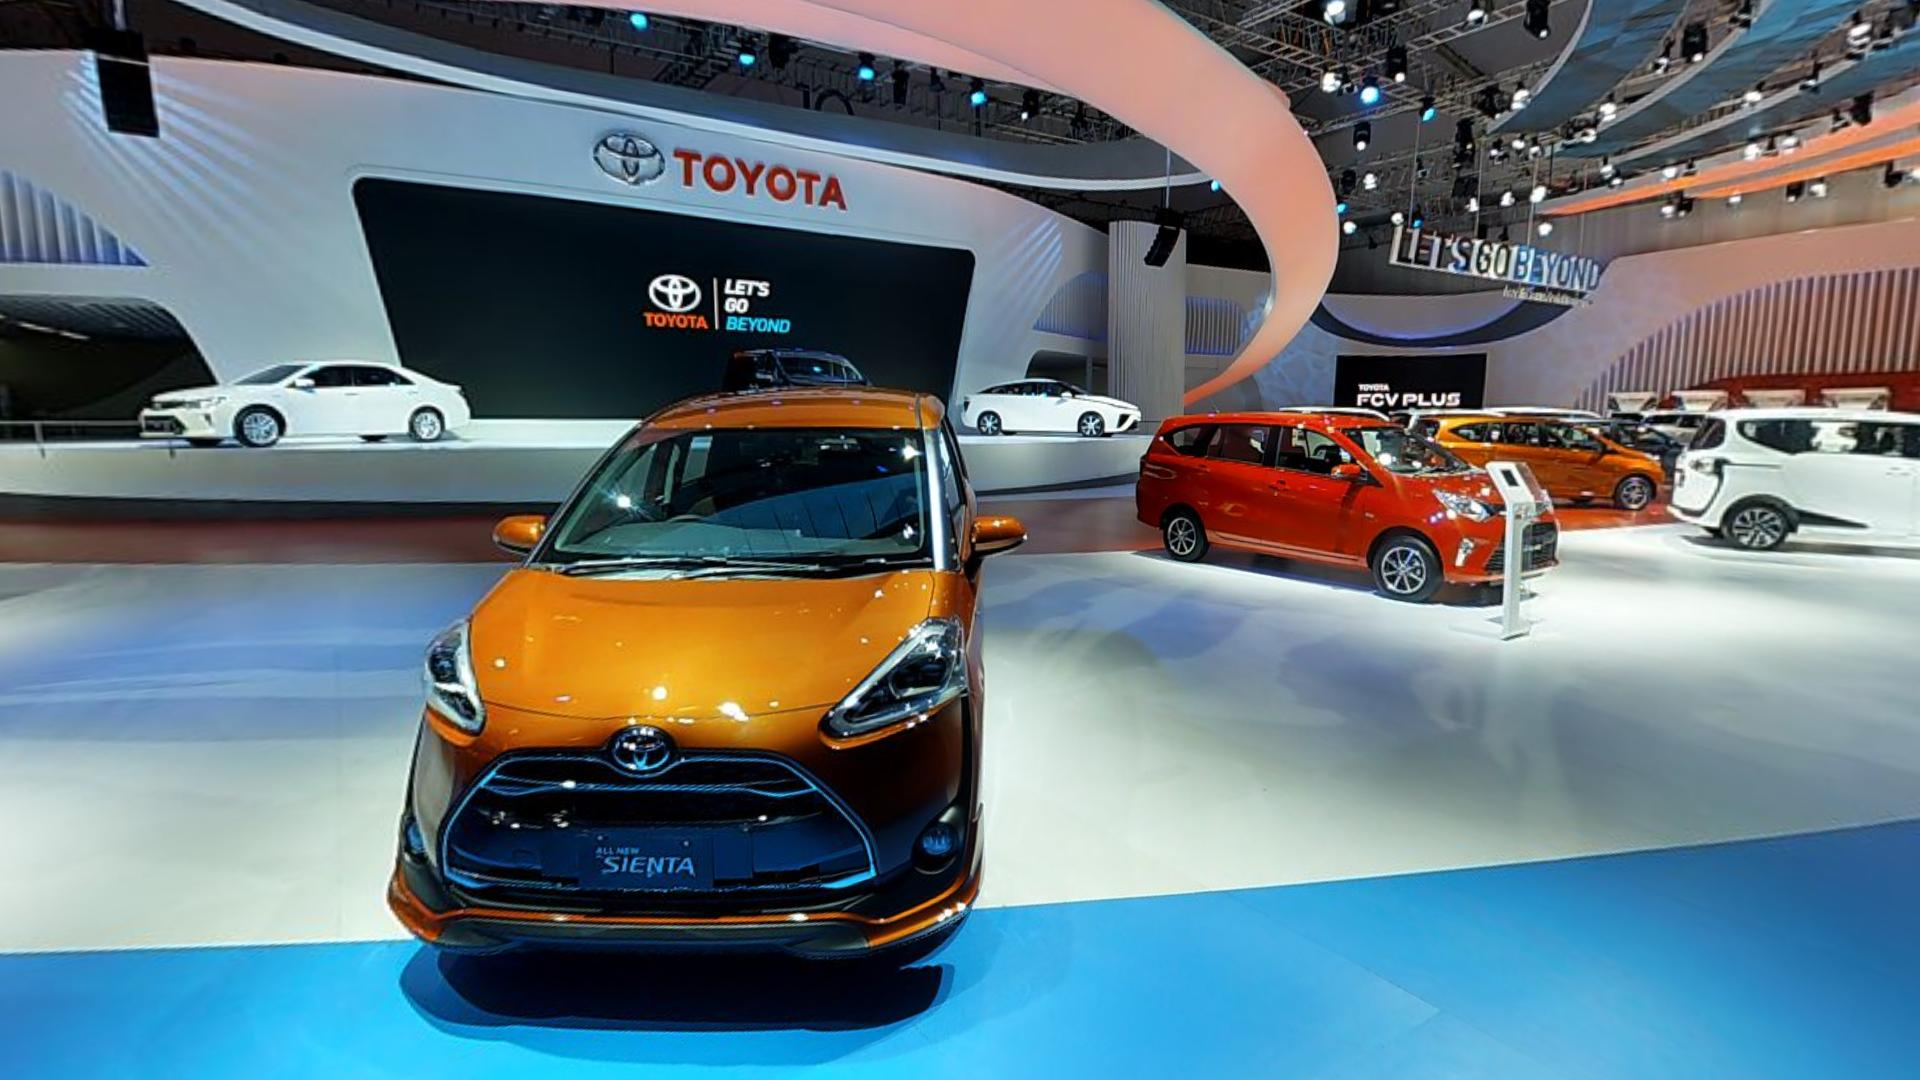 Toyota Booth at GIIAS 2016